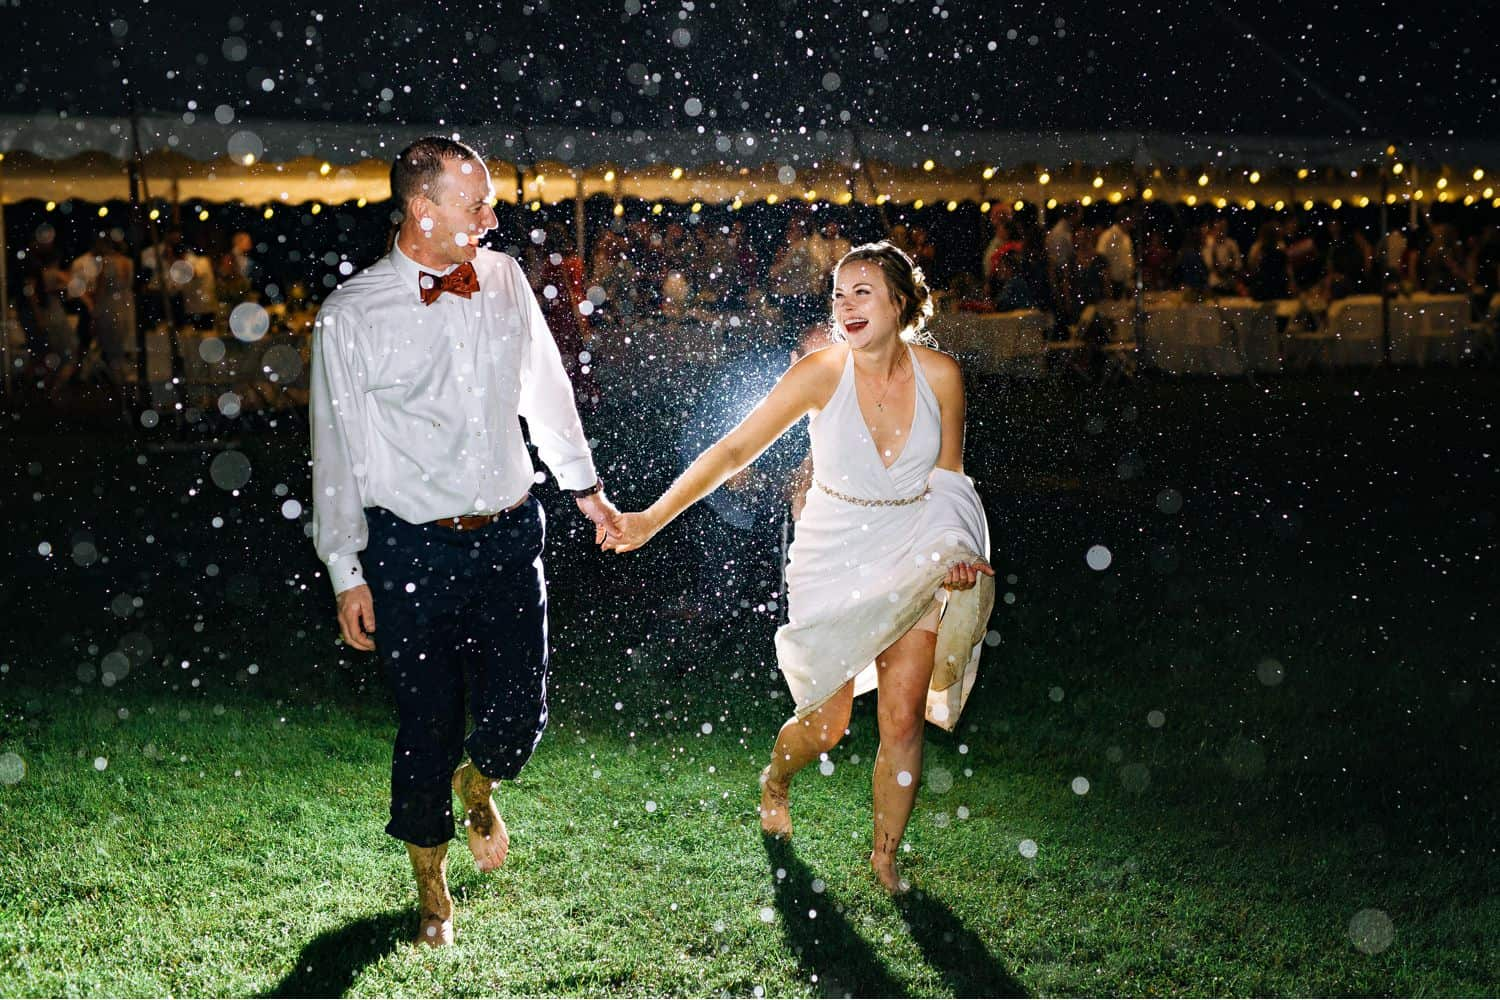 A bride and groom run through the rain at the end of their wedding reception